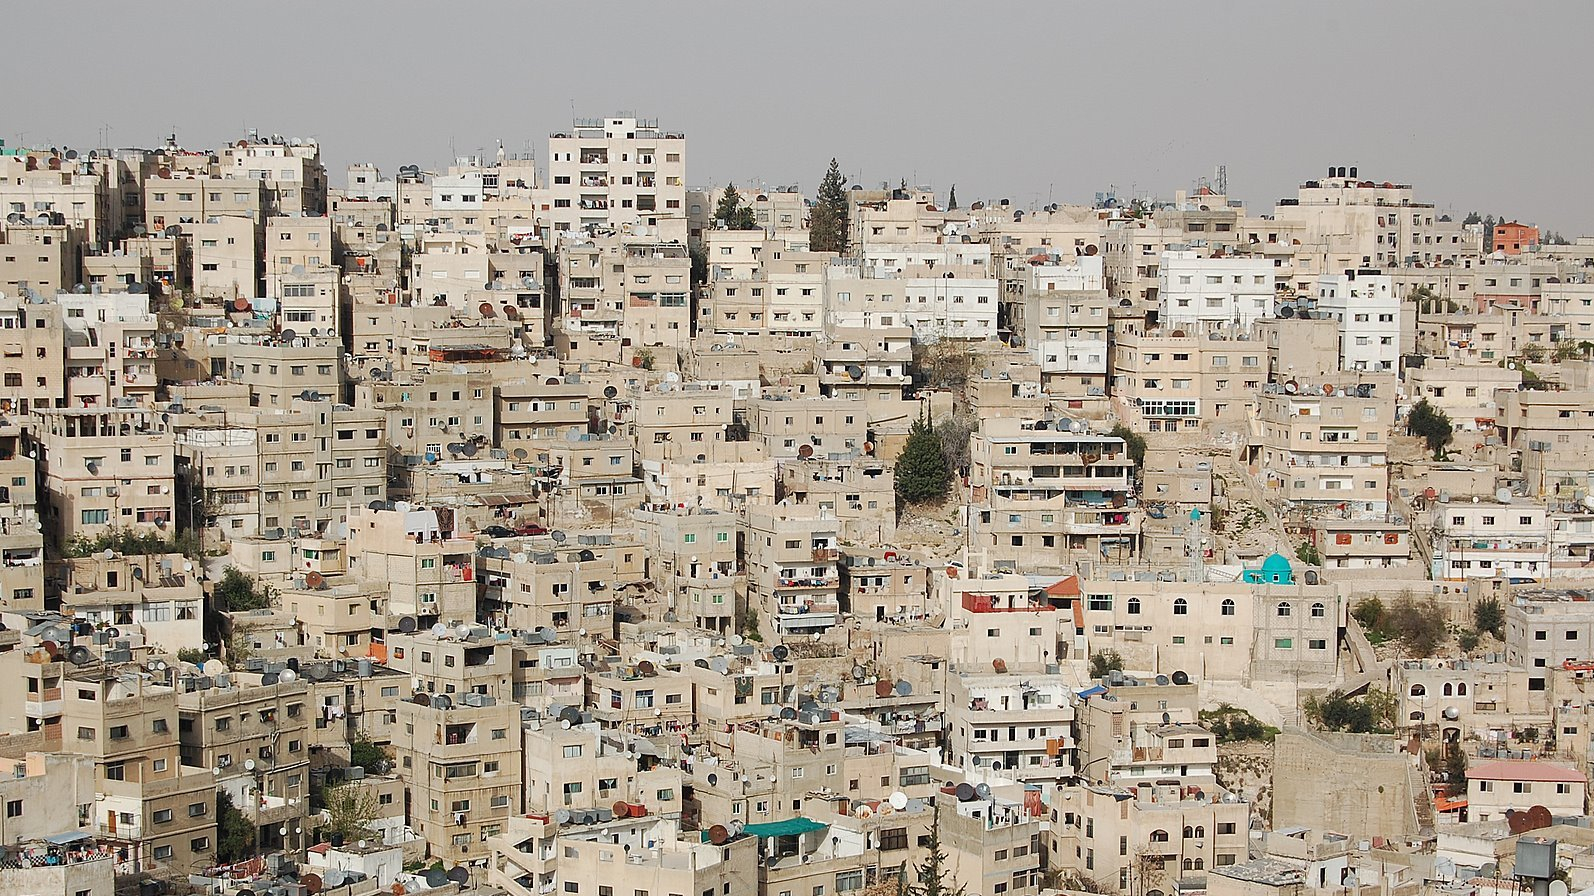 Scene of Houses on a hill in Amman Downtown